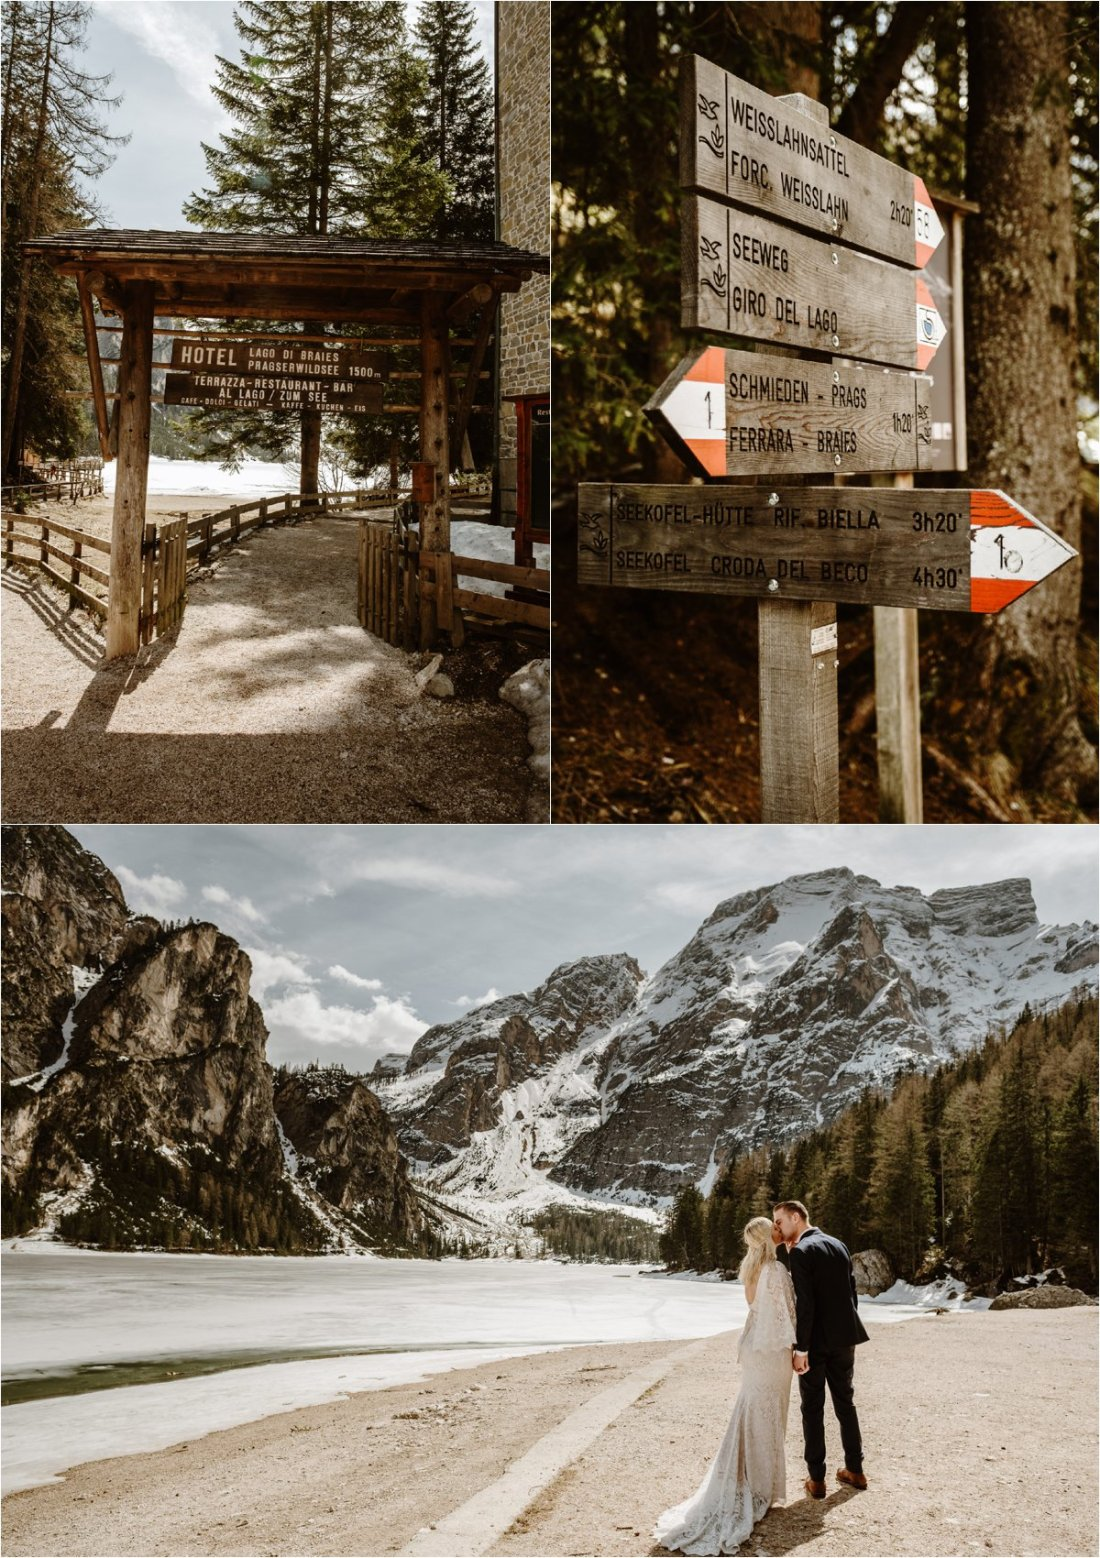 Erika & Nathan follow the footpath along the lake at Lago di Braies in the Italian Dolomites. Photos by Wild Connections Photography